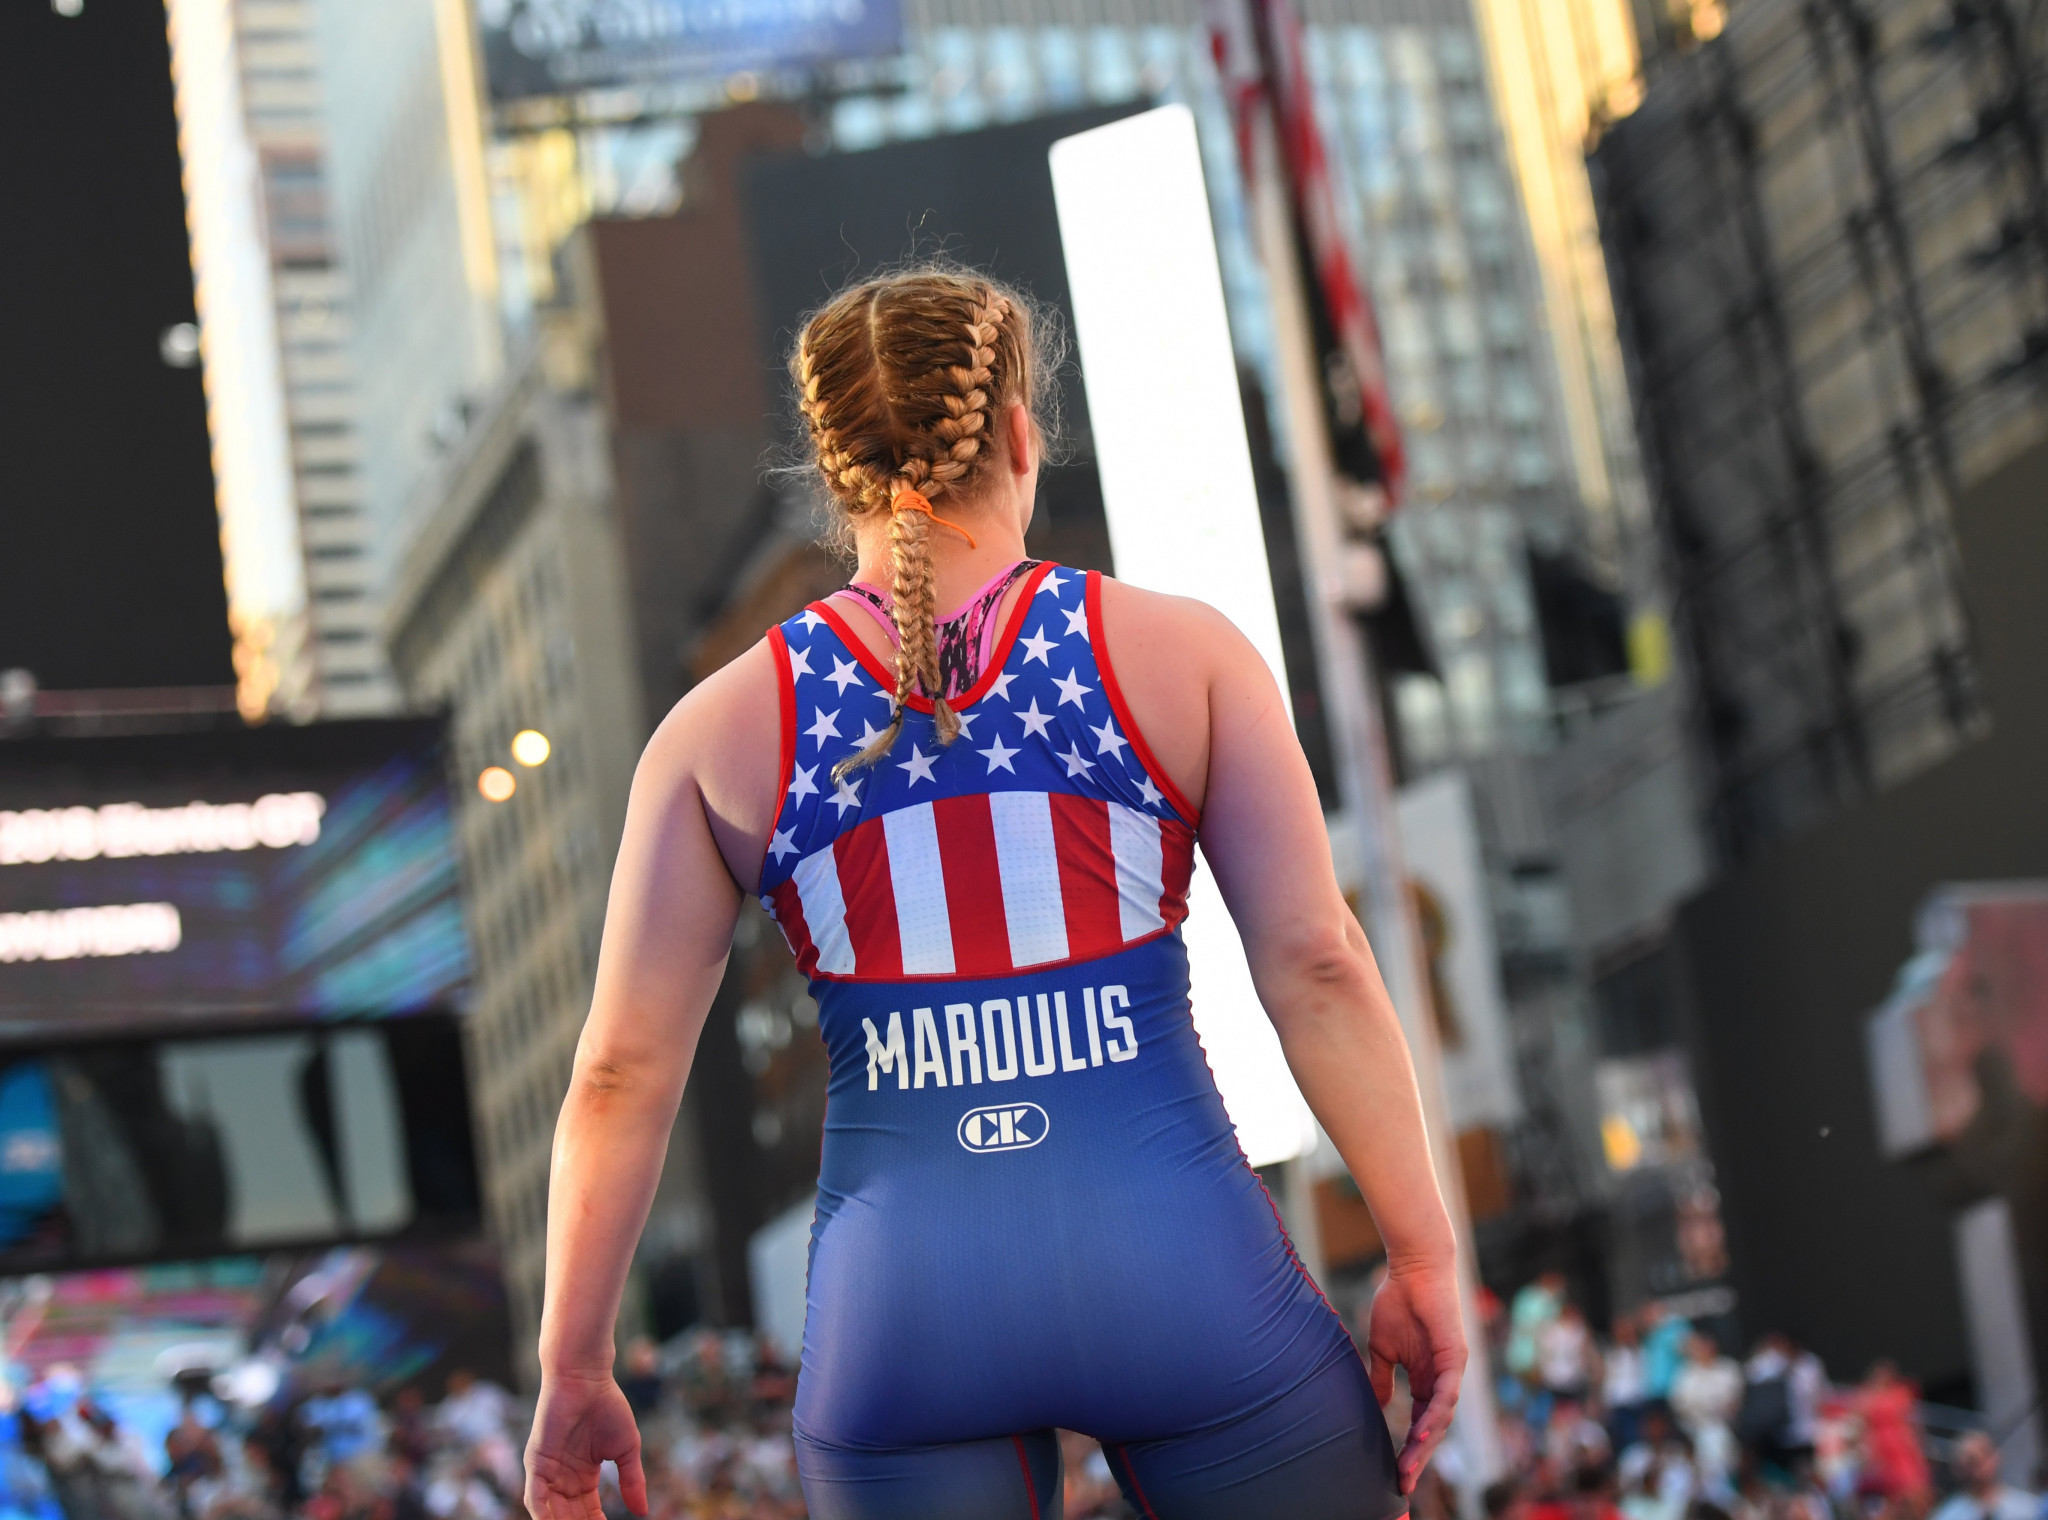 Helen Maroulis is among those on the women's shortlist after winning the women's 58kg gold medal at the United World Wresting Championships in Paris without conceding a point ©Getty Images